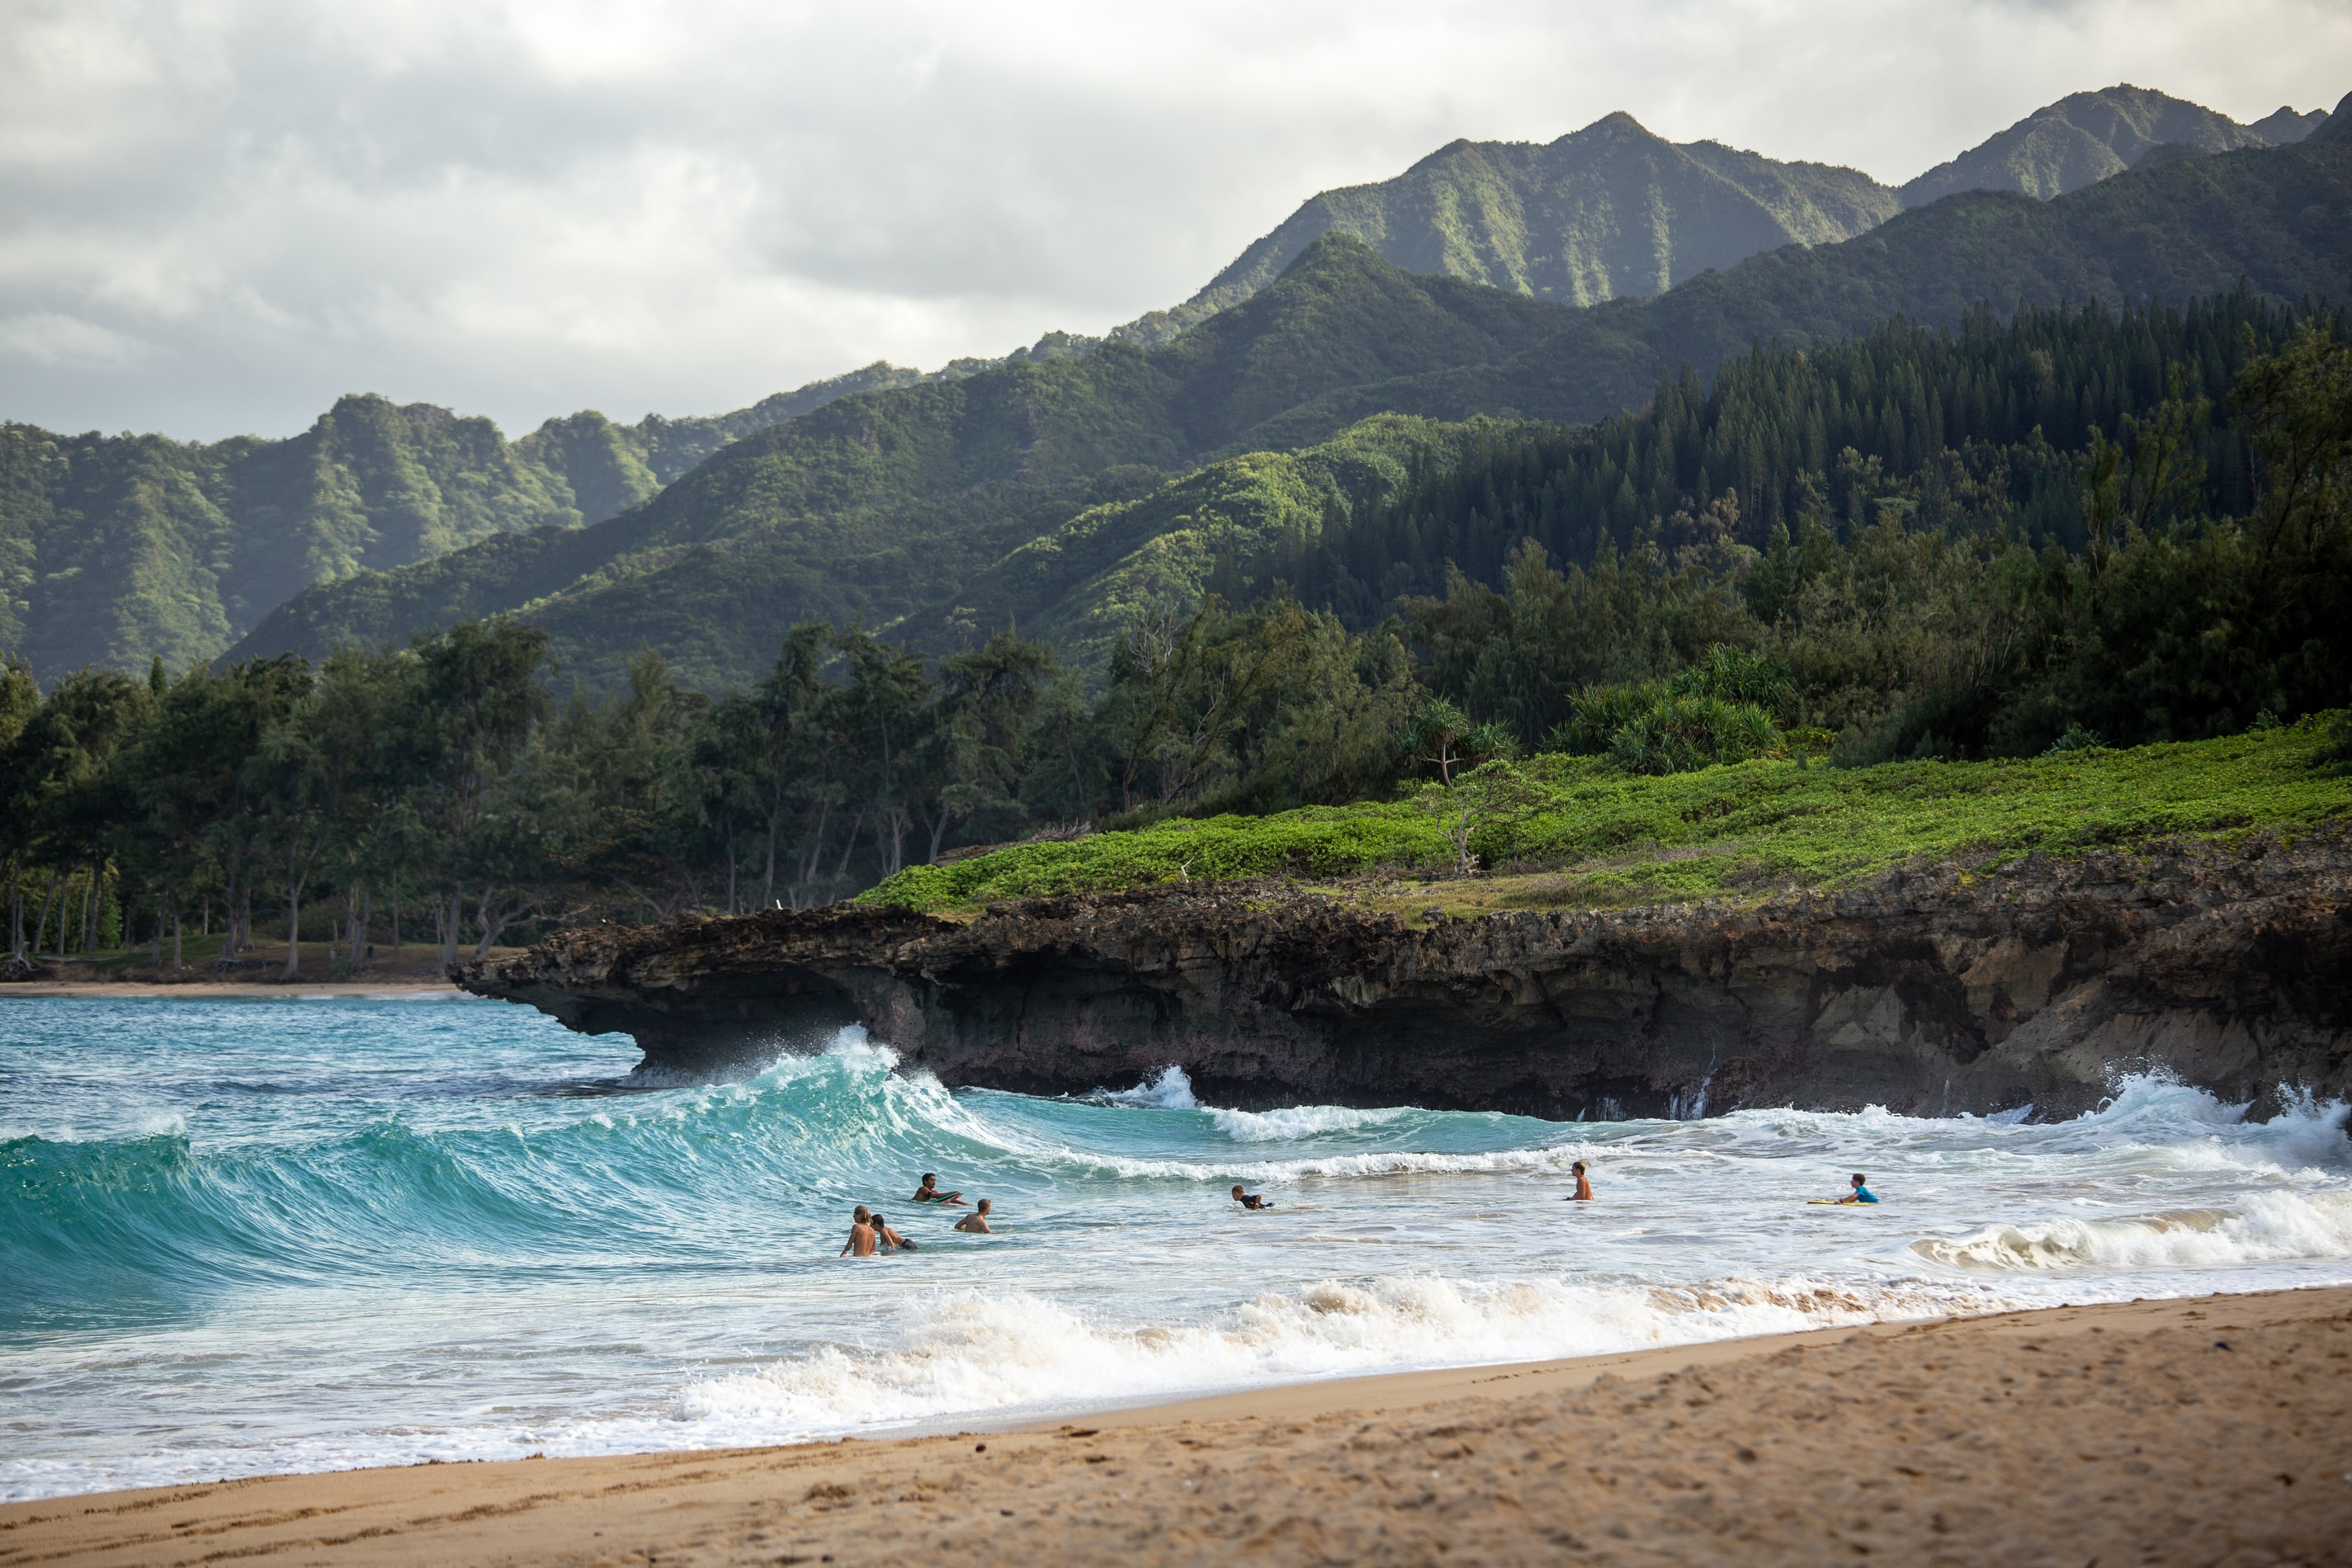 Hawaii inspired mountains and beach waves